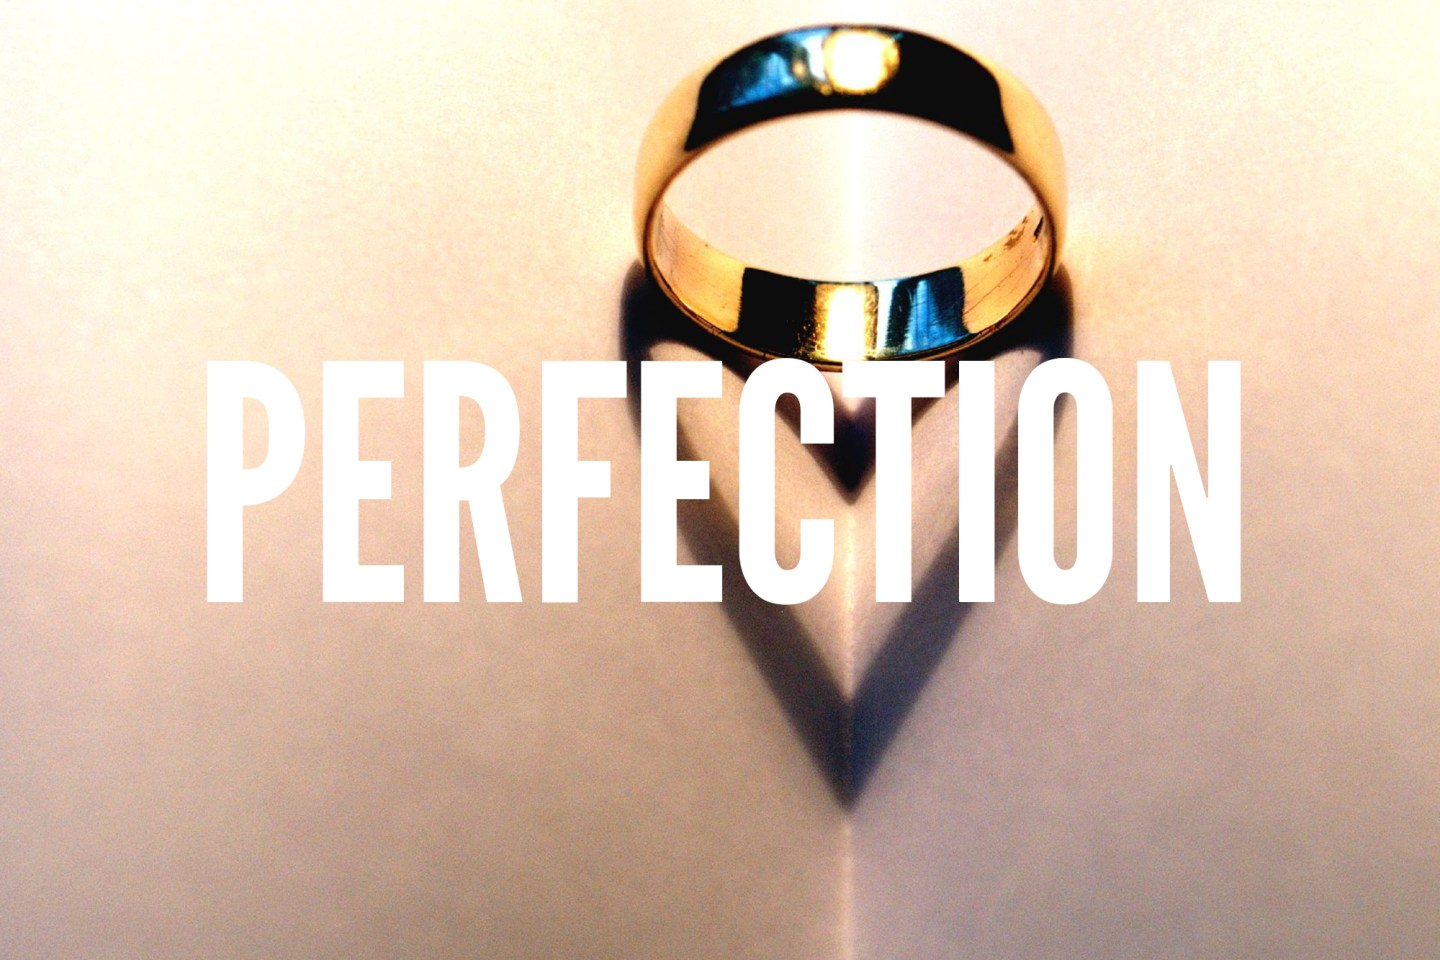 Perfection | BobbyShirley.com